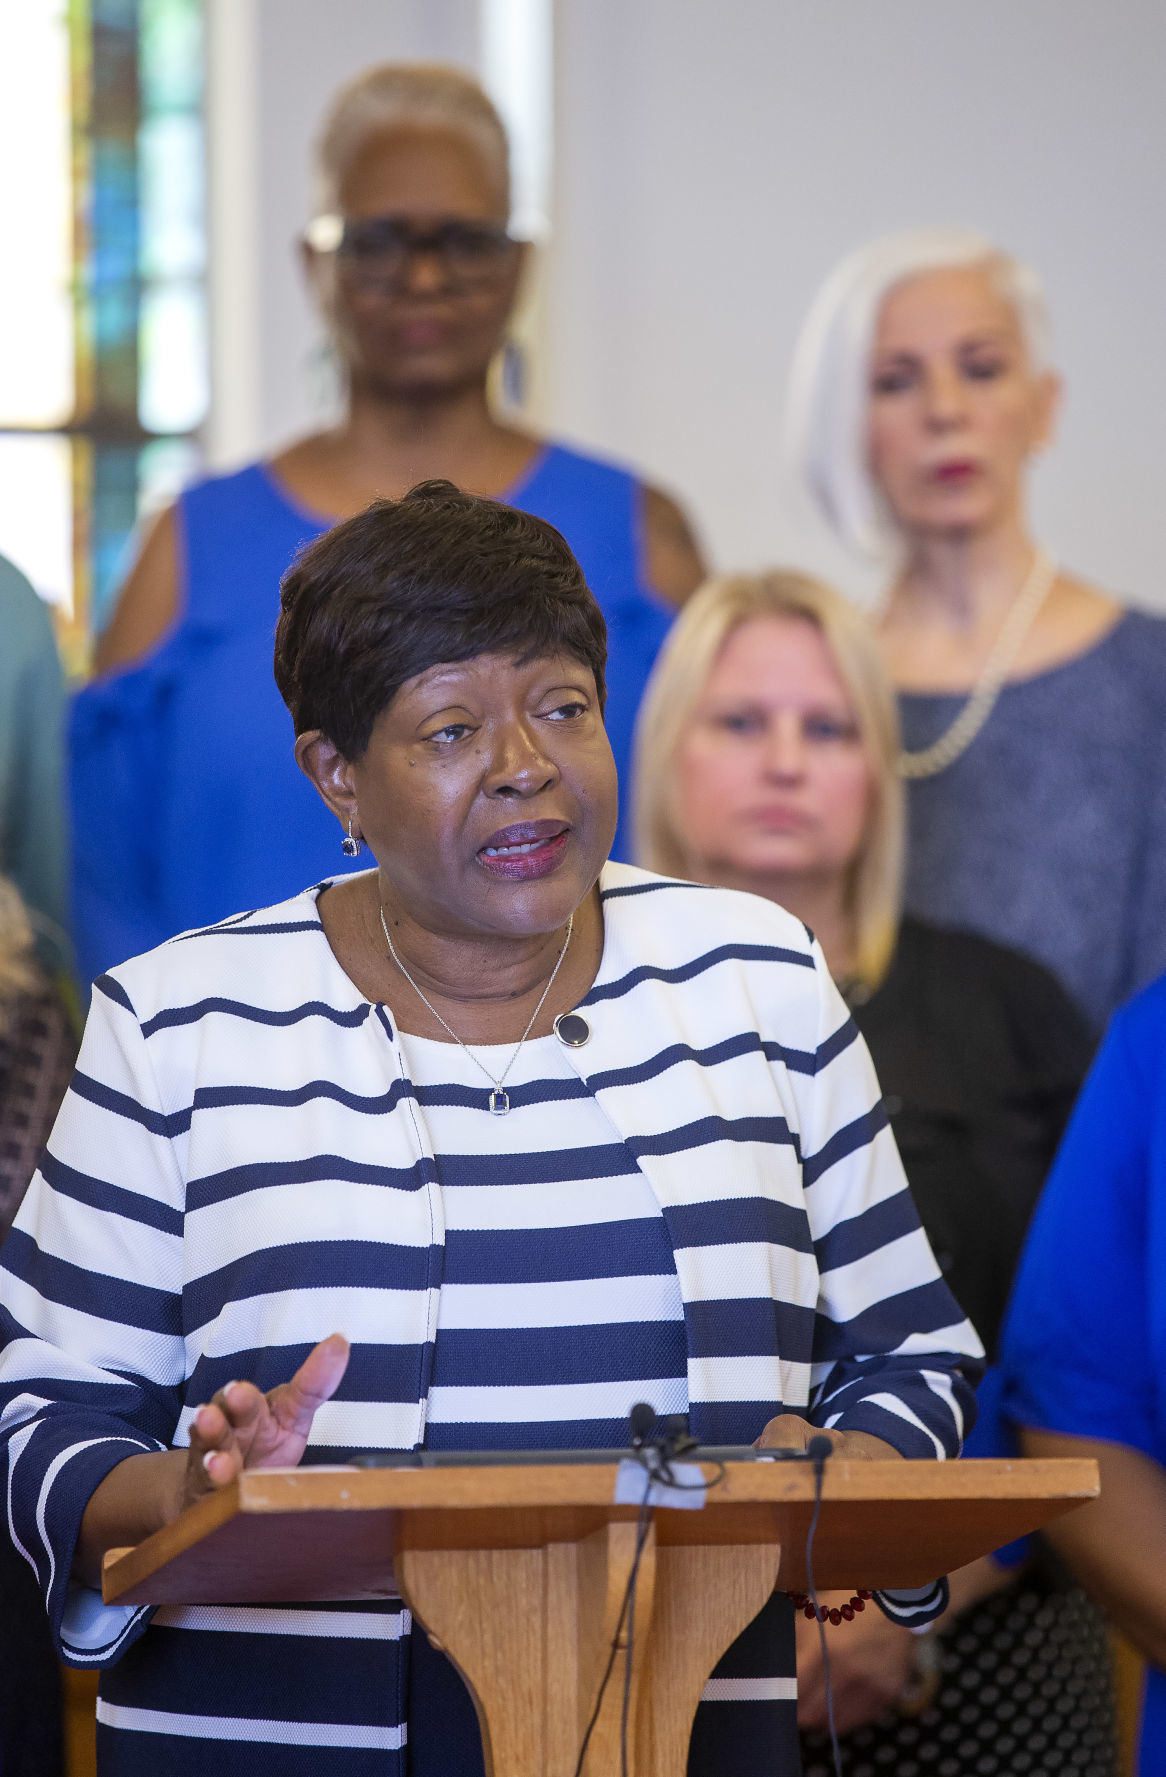 Women call for NAACP to expel member over harassment